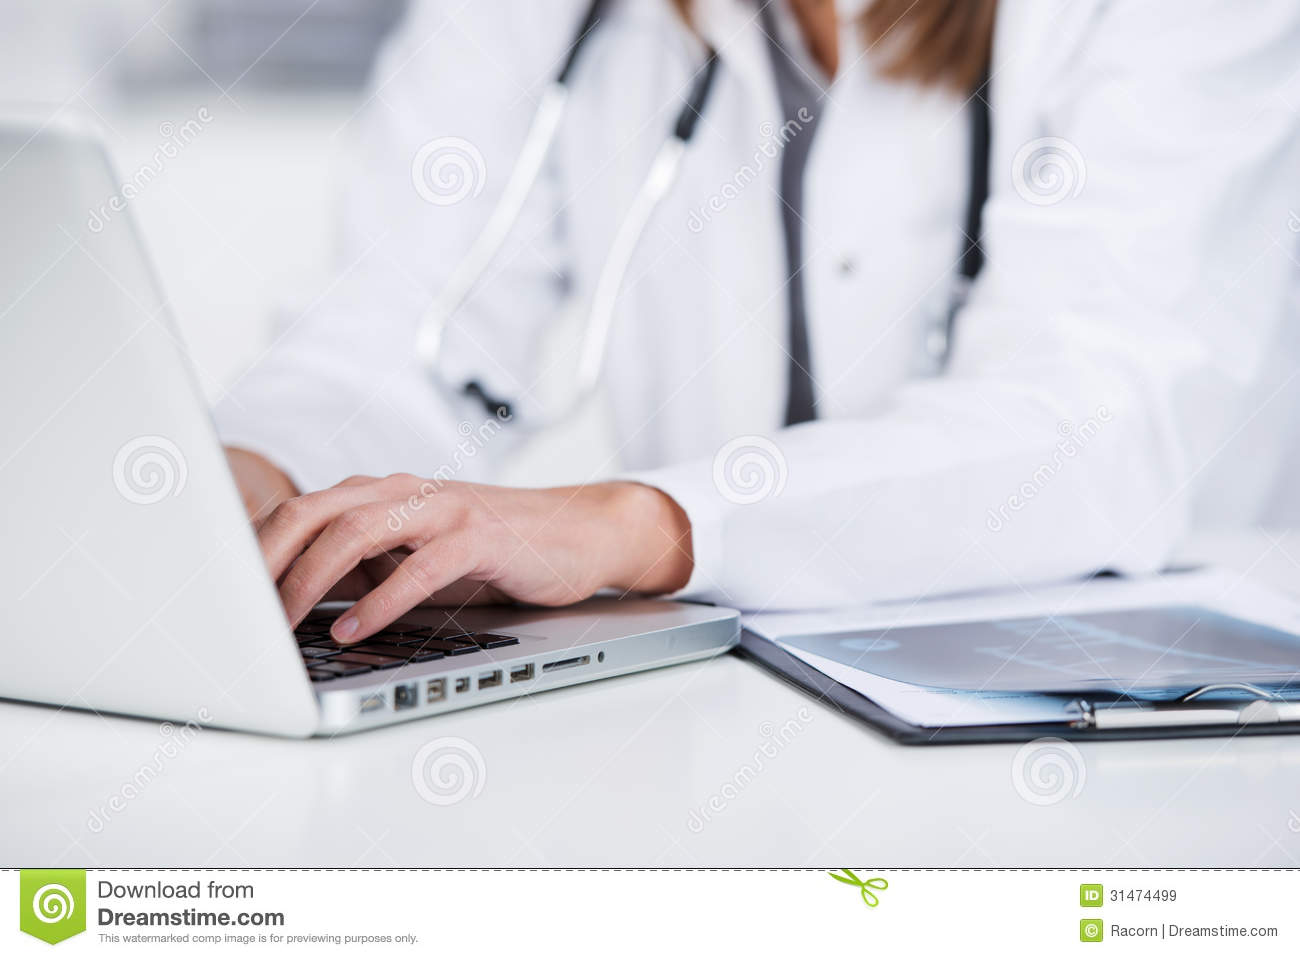 Bureau femelle de docteur Using Laptop At